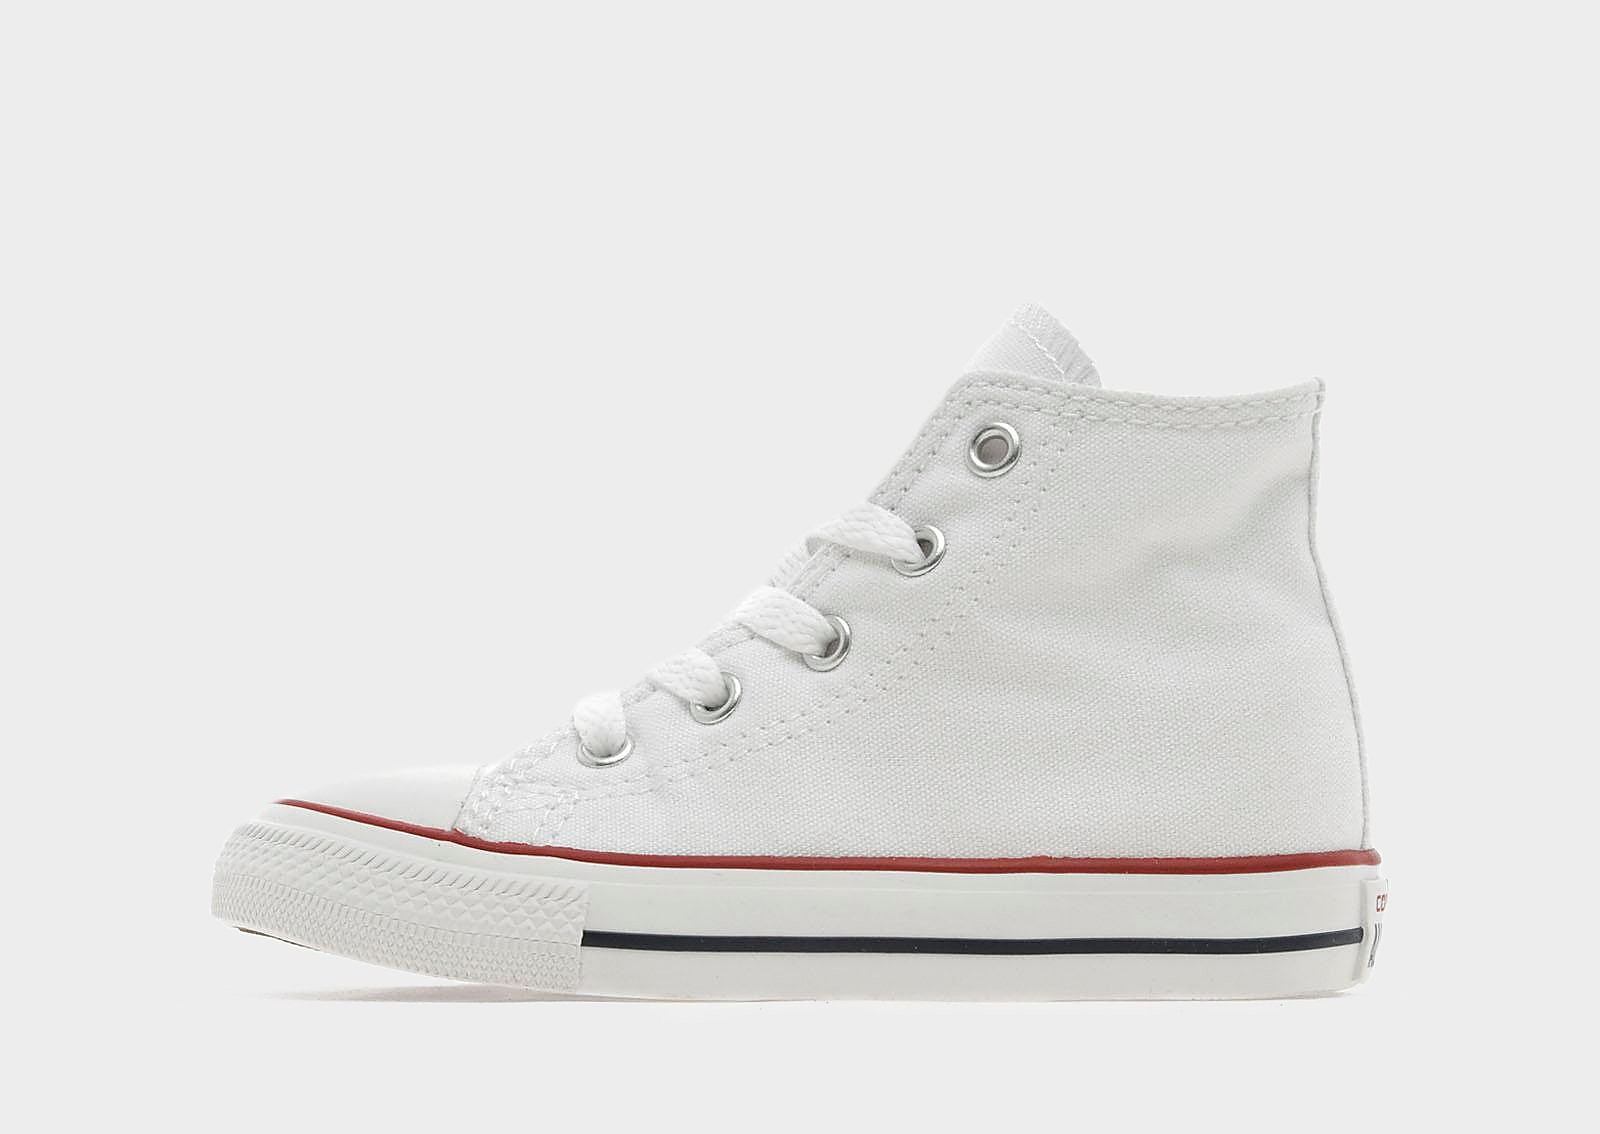 Converse All Star Hi Baby's - Optical White/Red/Blue - Kind